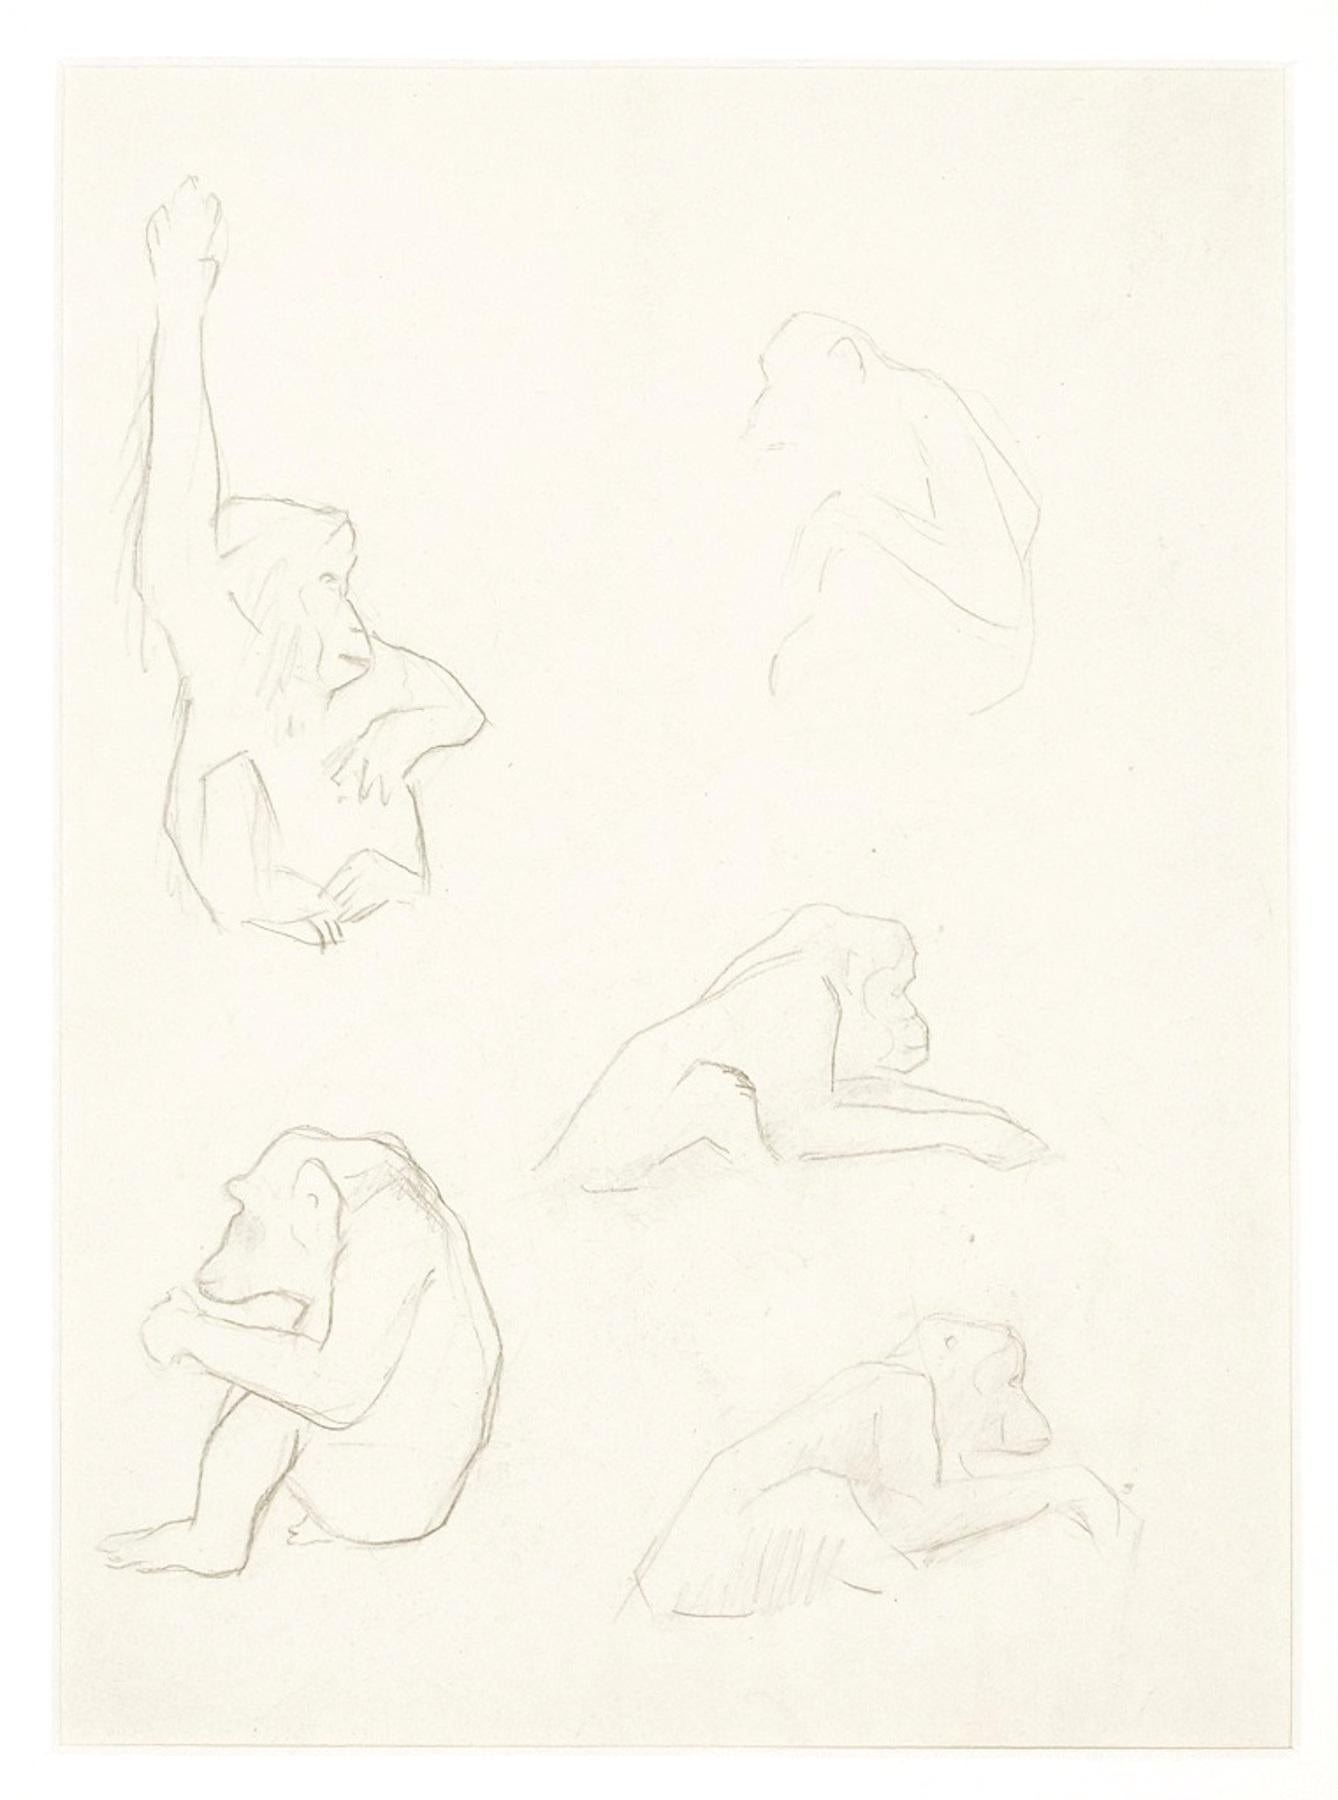 Monkeys - Original Drawing by Ernest Rouart - 1890s